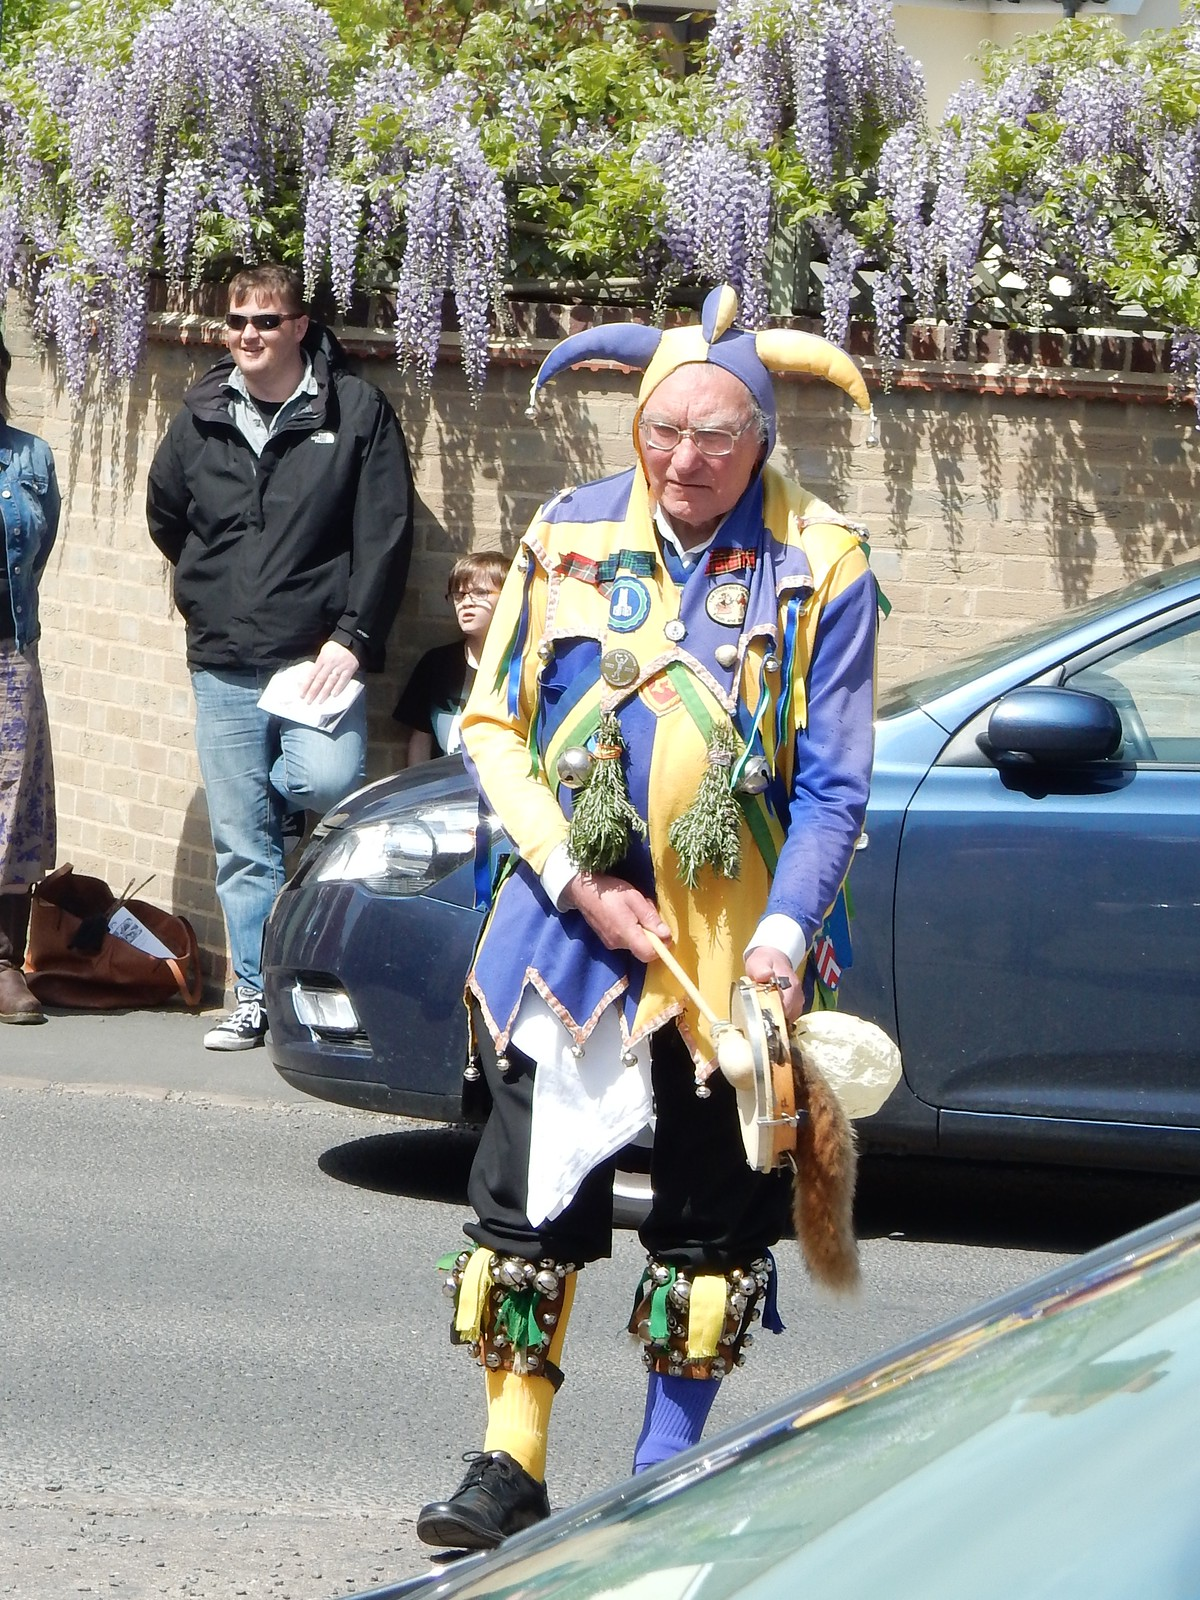 Man with odd socks Letchworth Morris, Baldock Circular